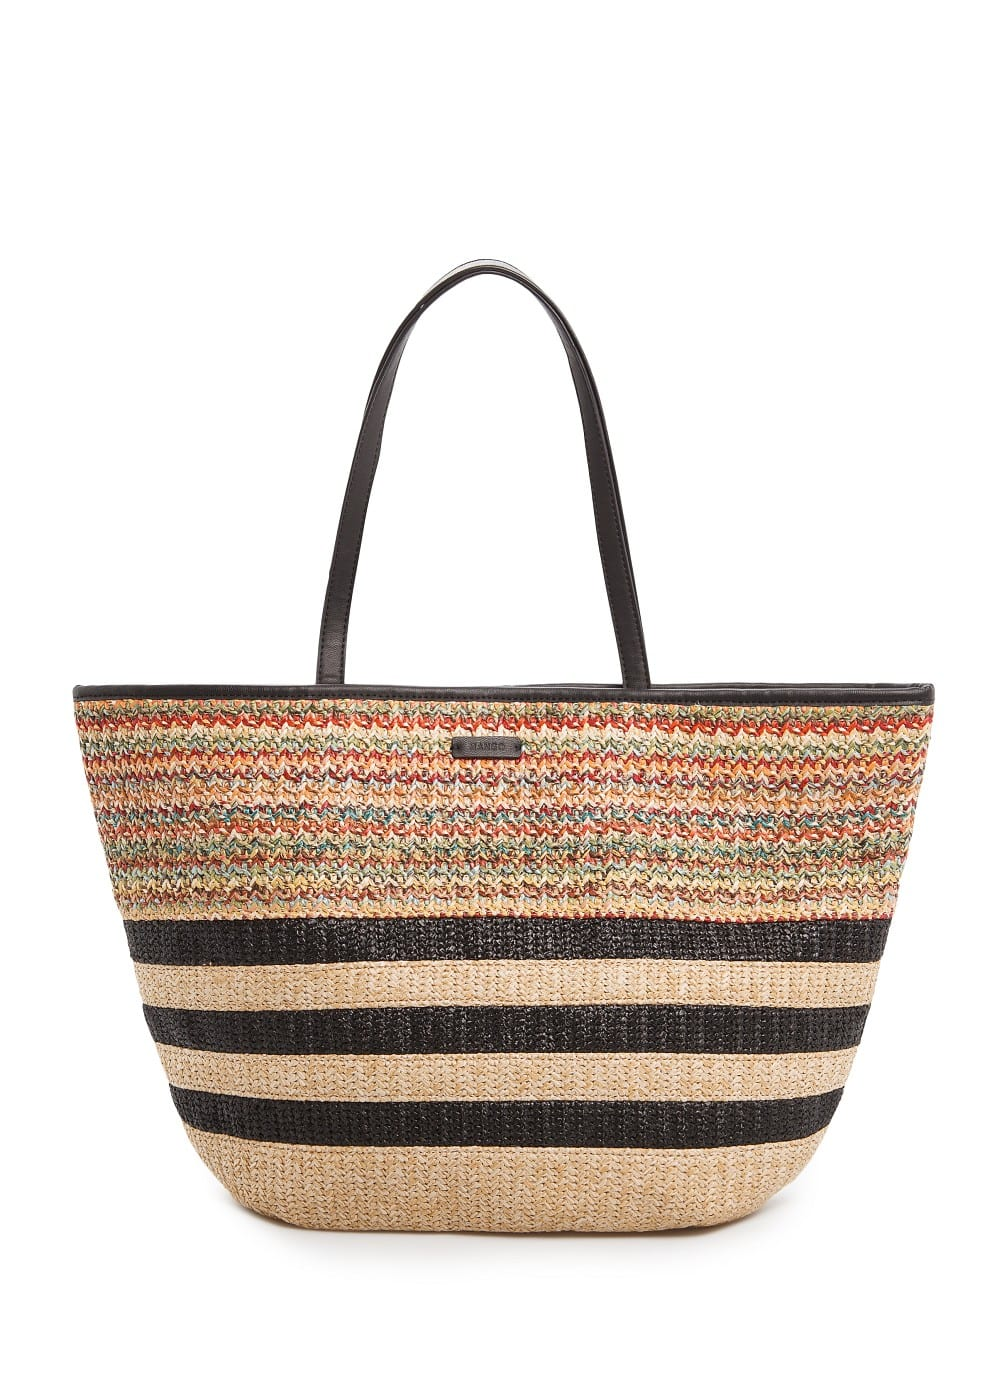 Multicolored raffia shopper bag